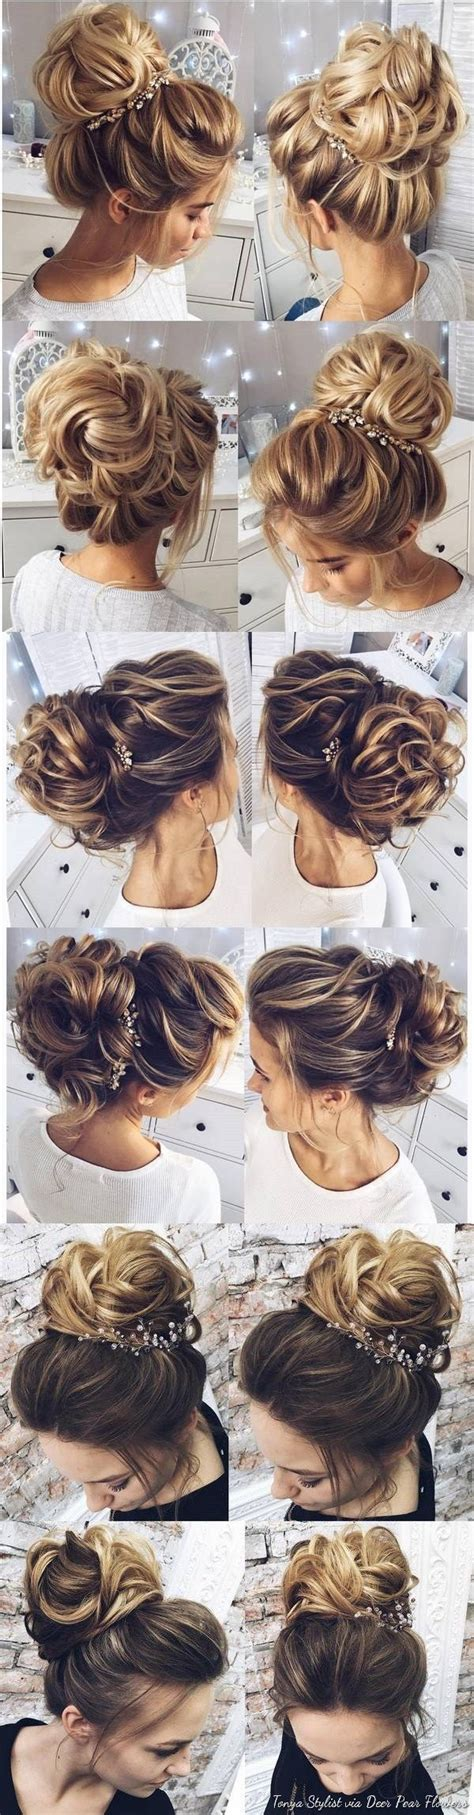 Wedding Hairstyles For Hair 50 by Best 25 Wedding Hairstyles Ideas On Wedding